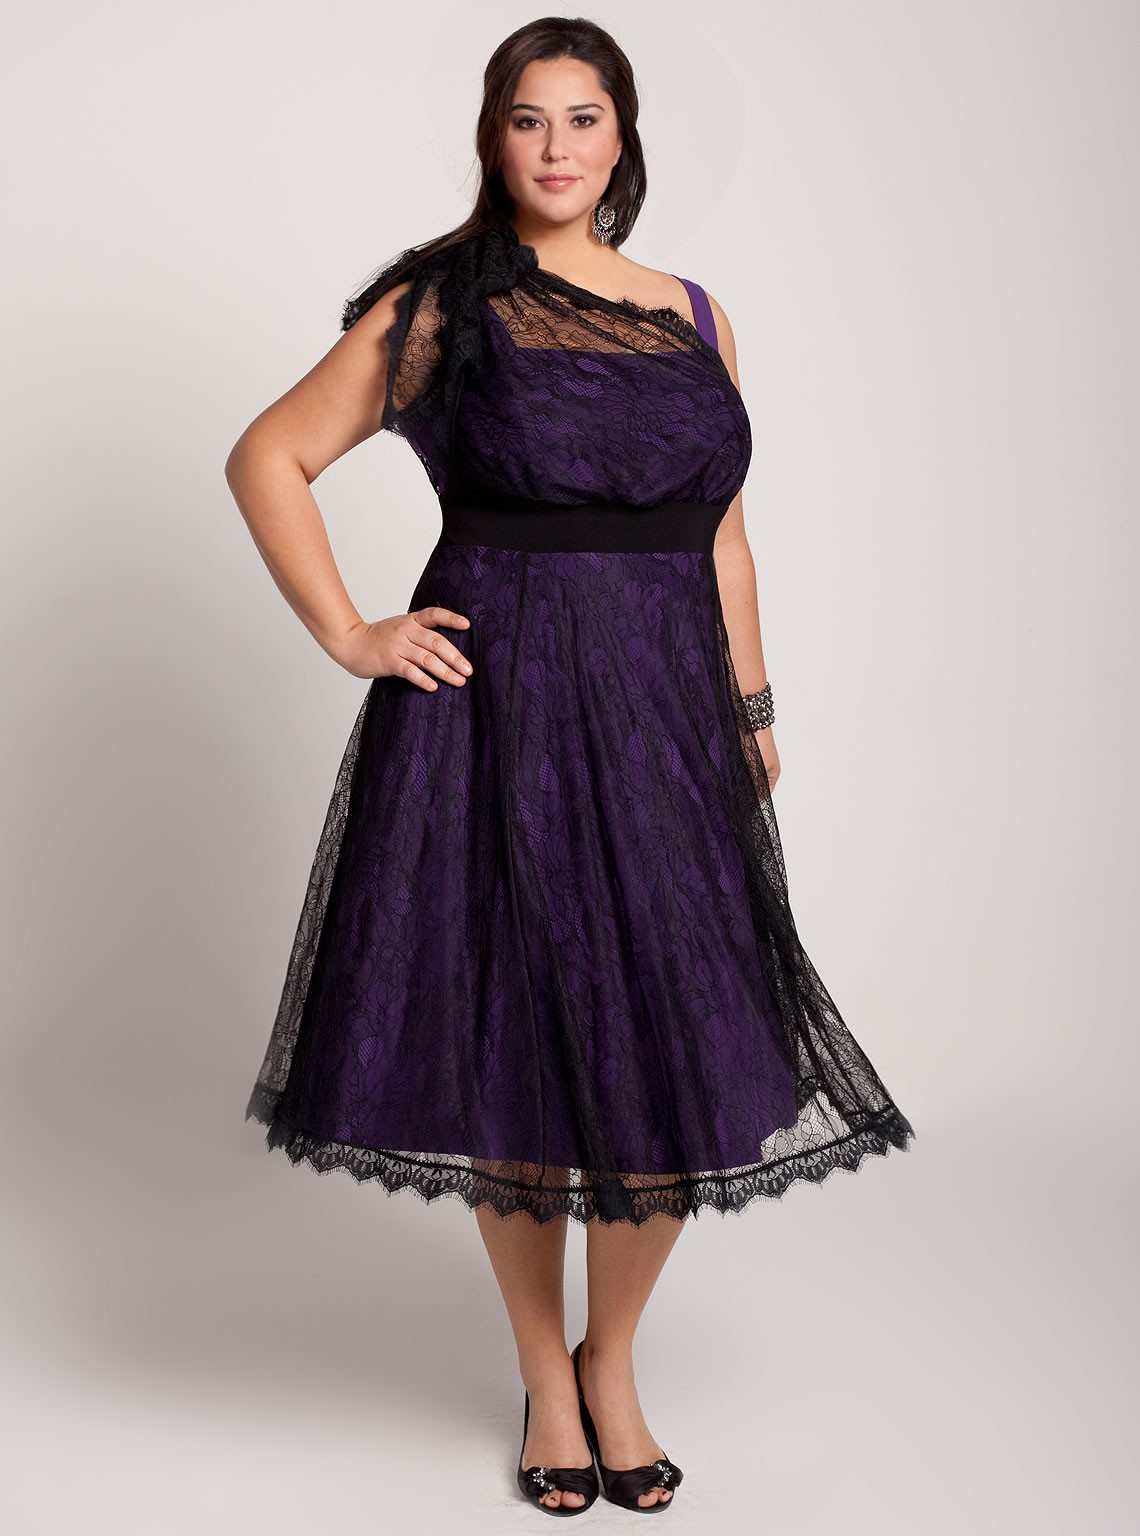 wedding party dresses plus size usa_Party Dresses_dressesss